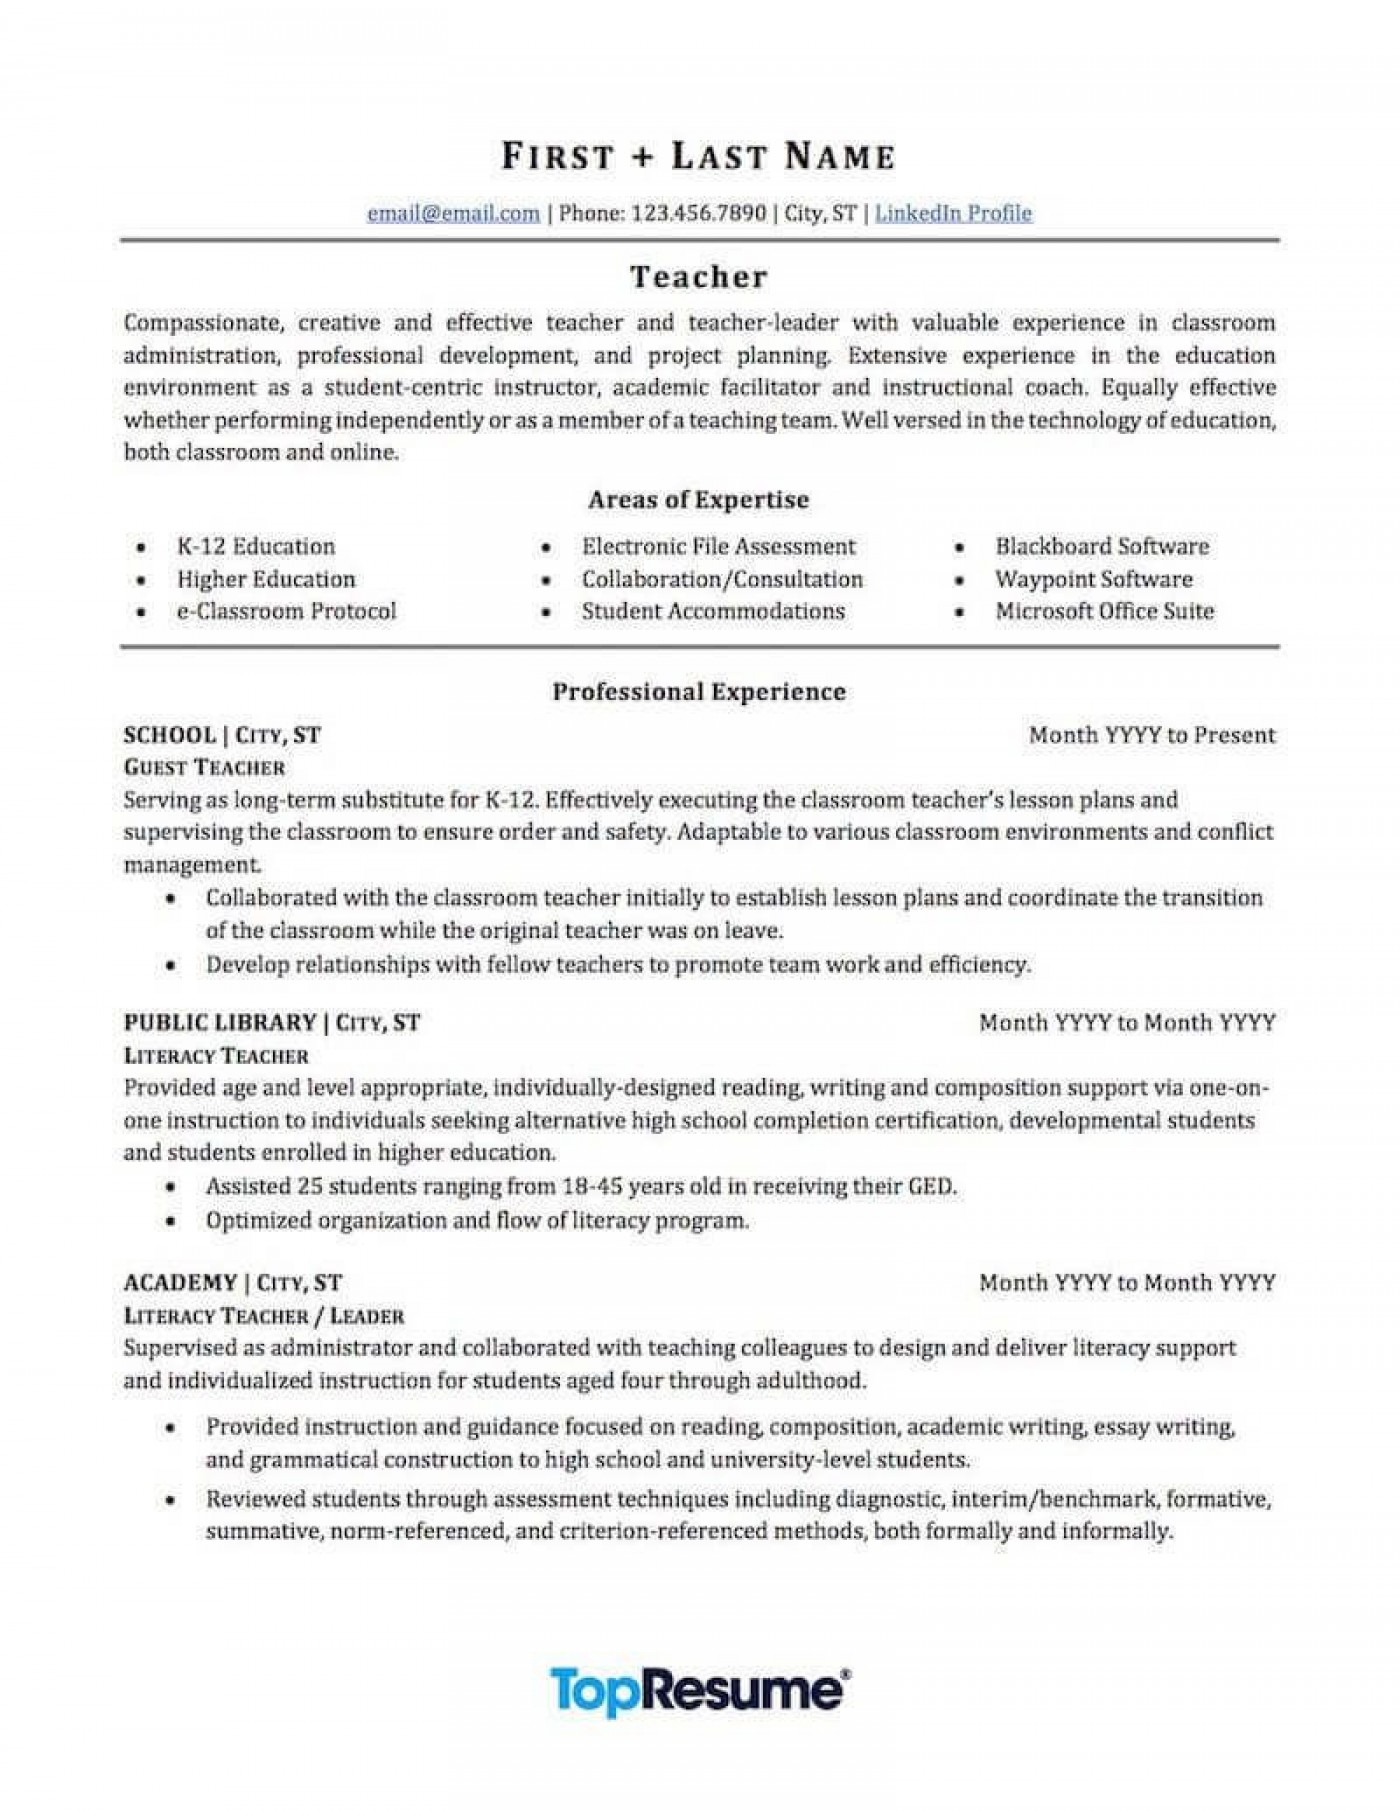 003 Surprising Resume Template For Teacher Sample  Free Download Australia Microsoft Word 20071400